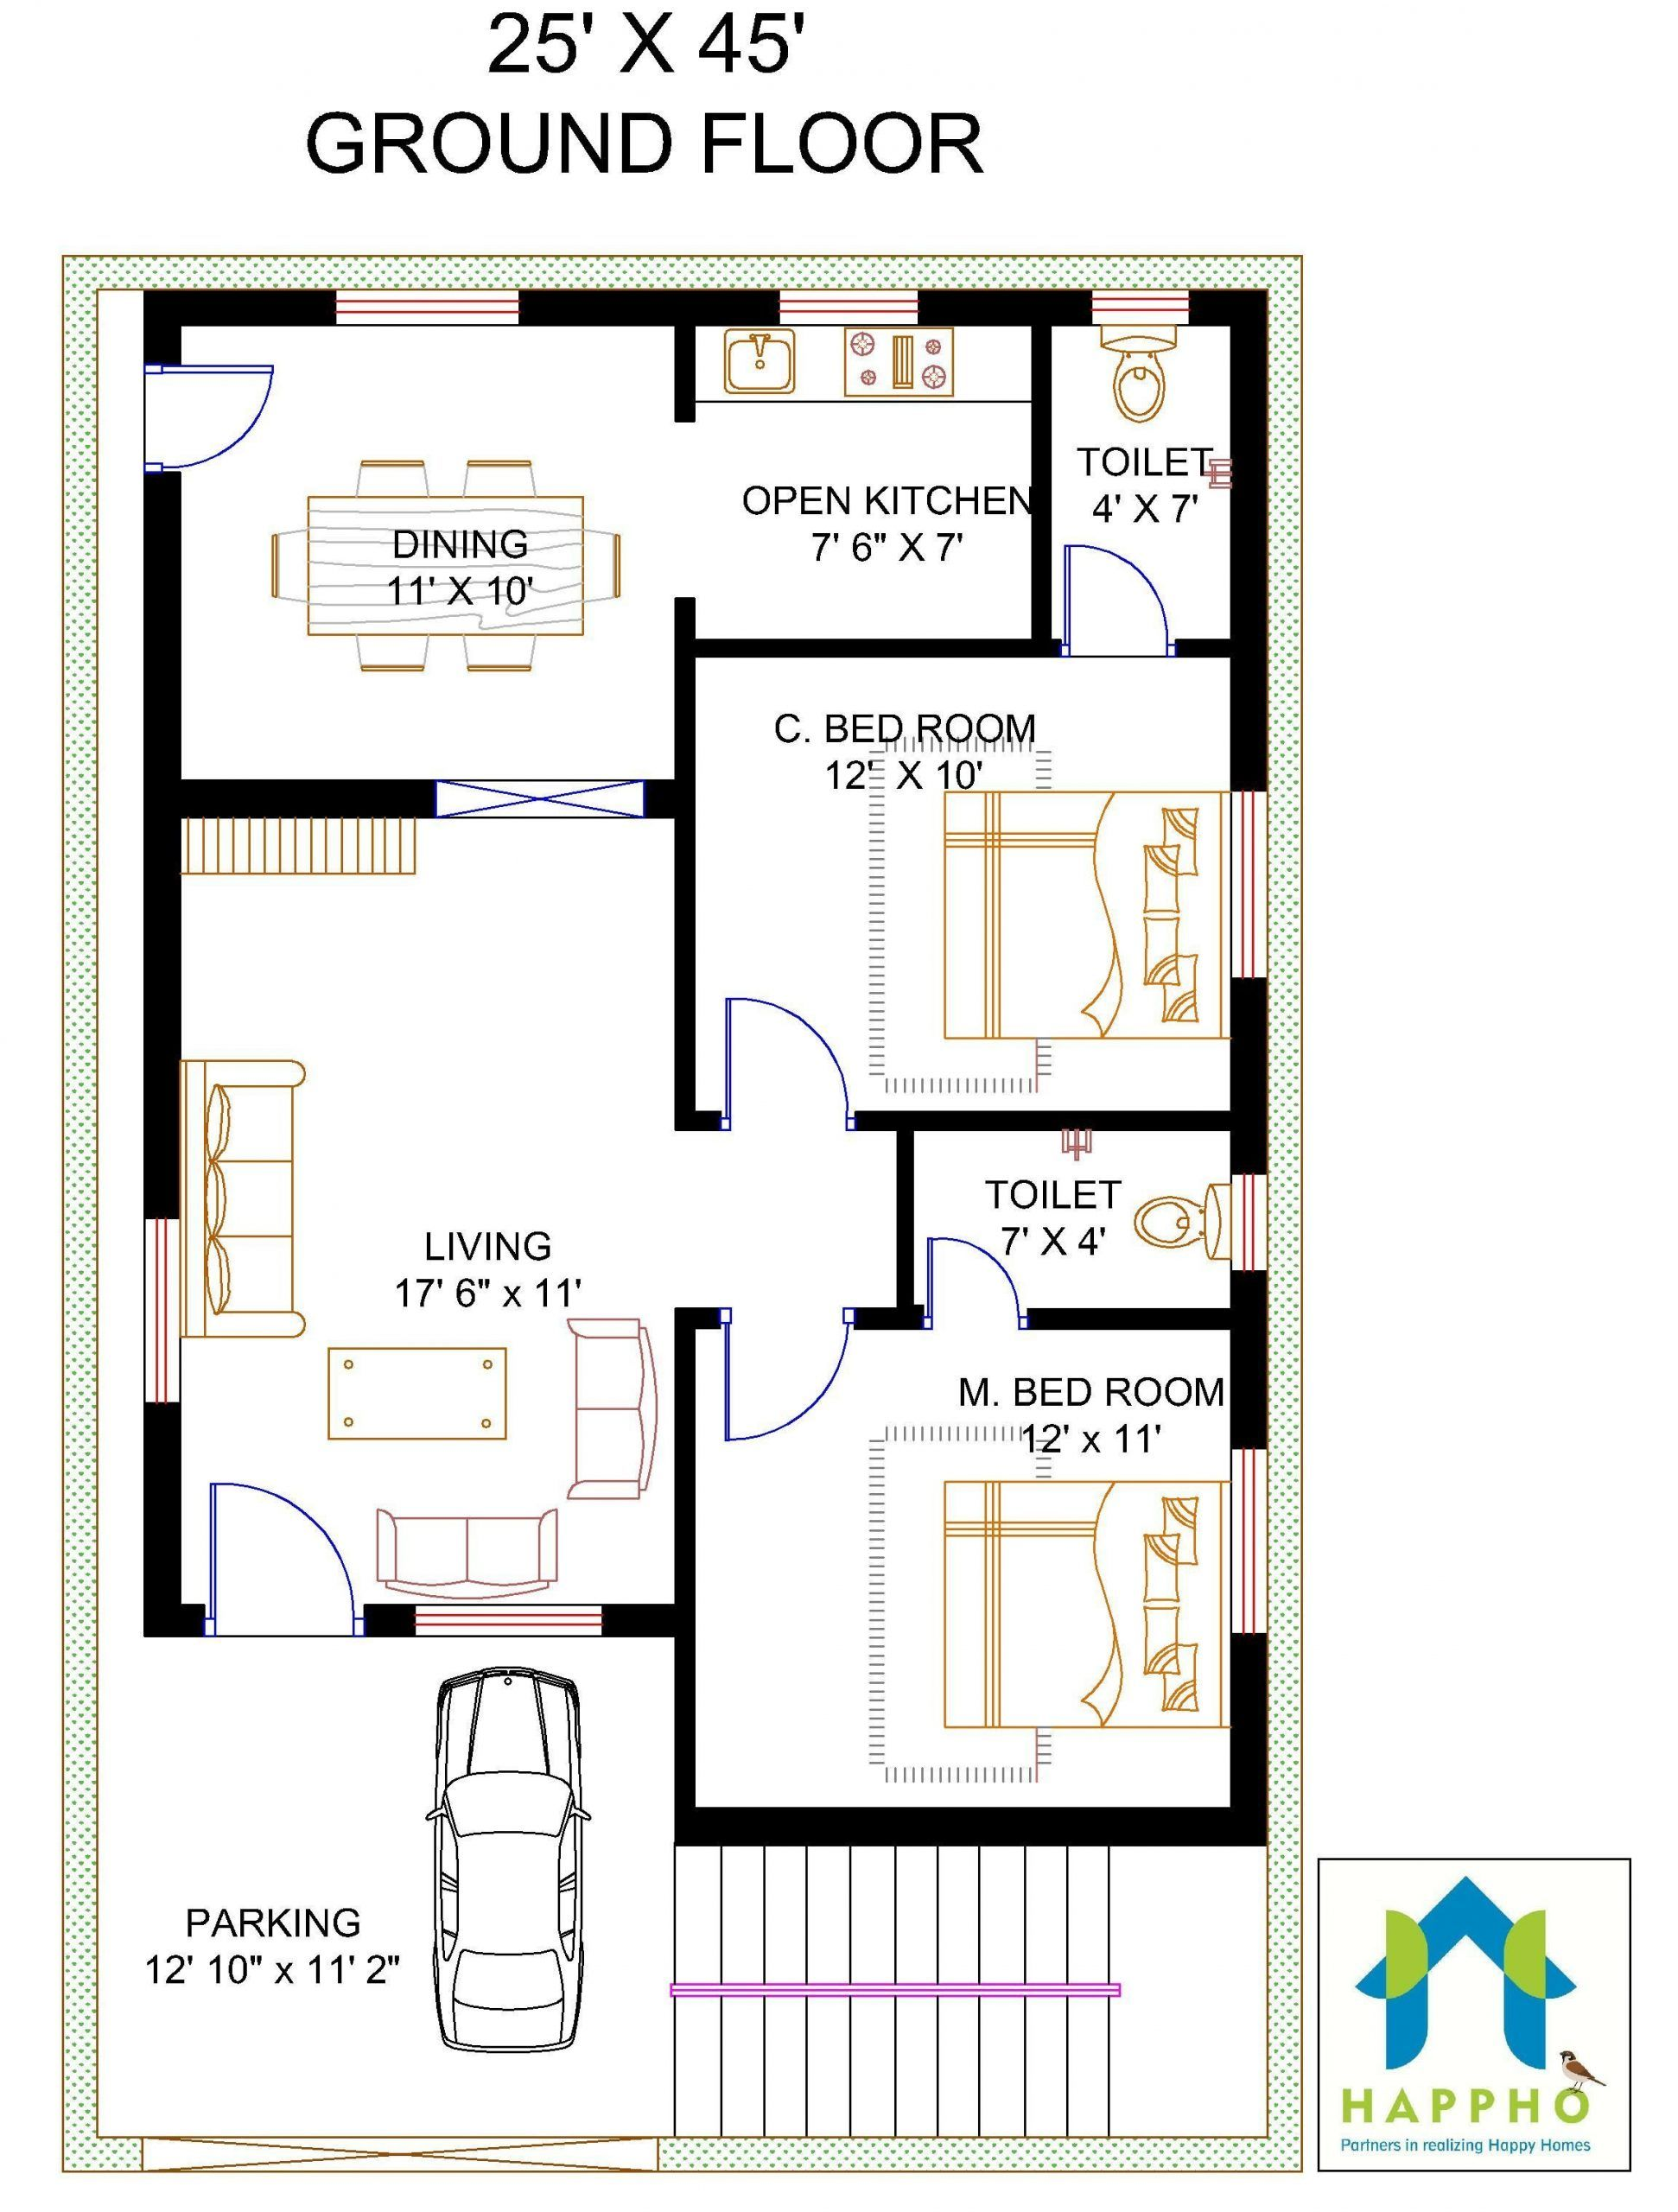 21 Artistic Home Plans Indian 2bhk That Can Make Your In 2020 20x40 House Plans Open Concept House Plans Bedroom House Plans